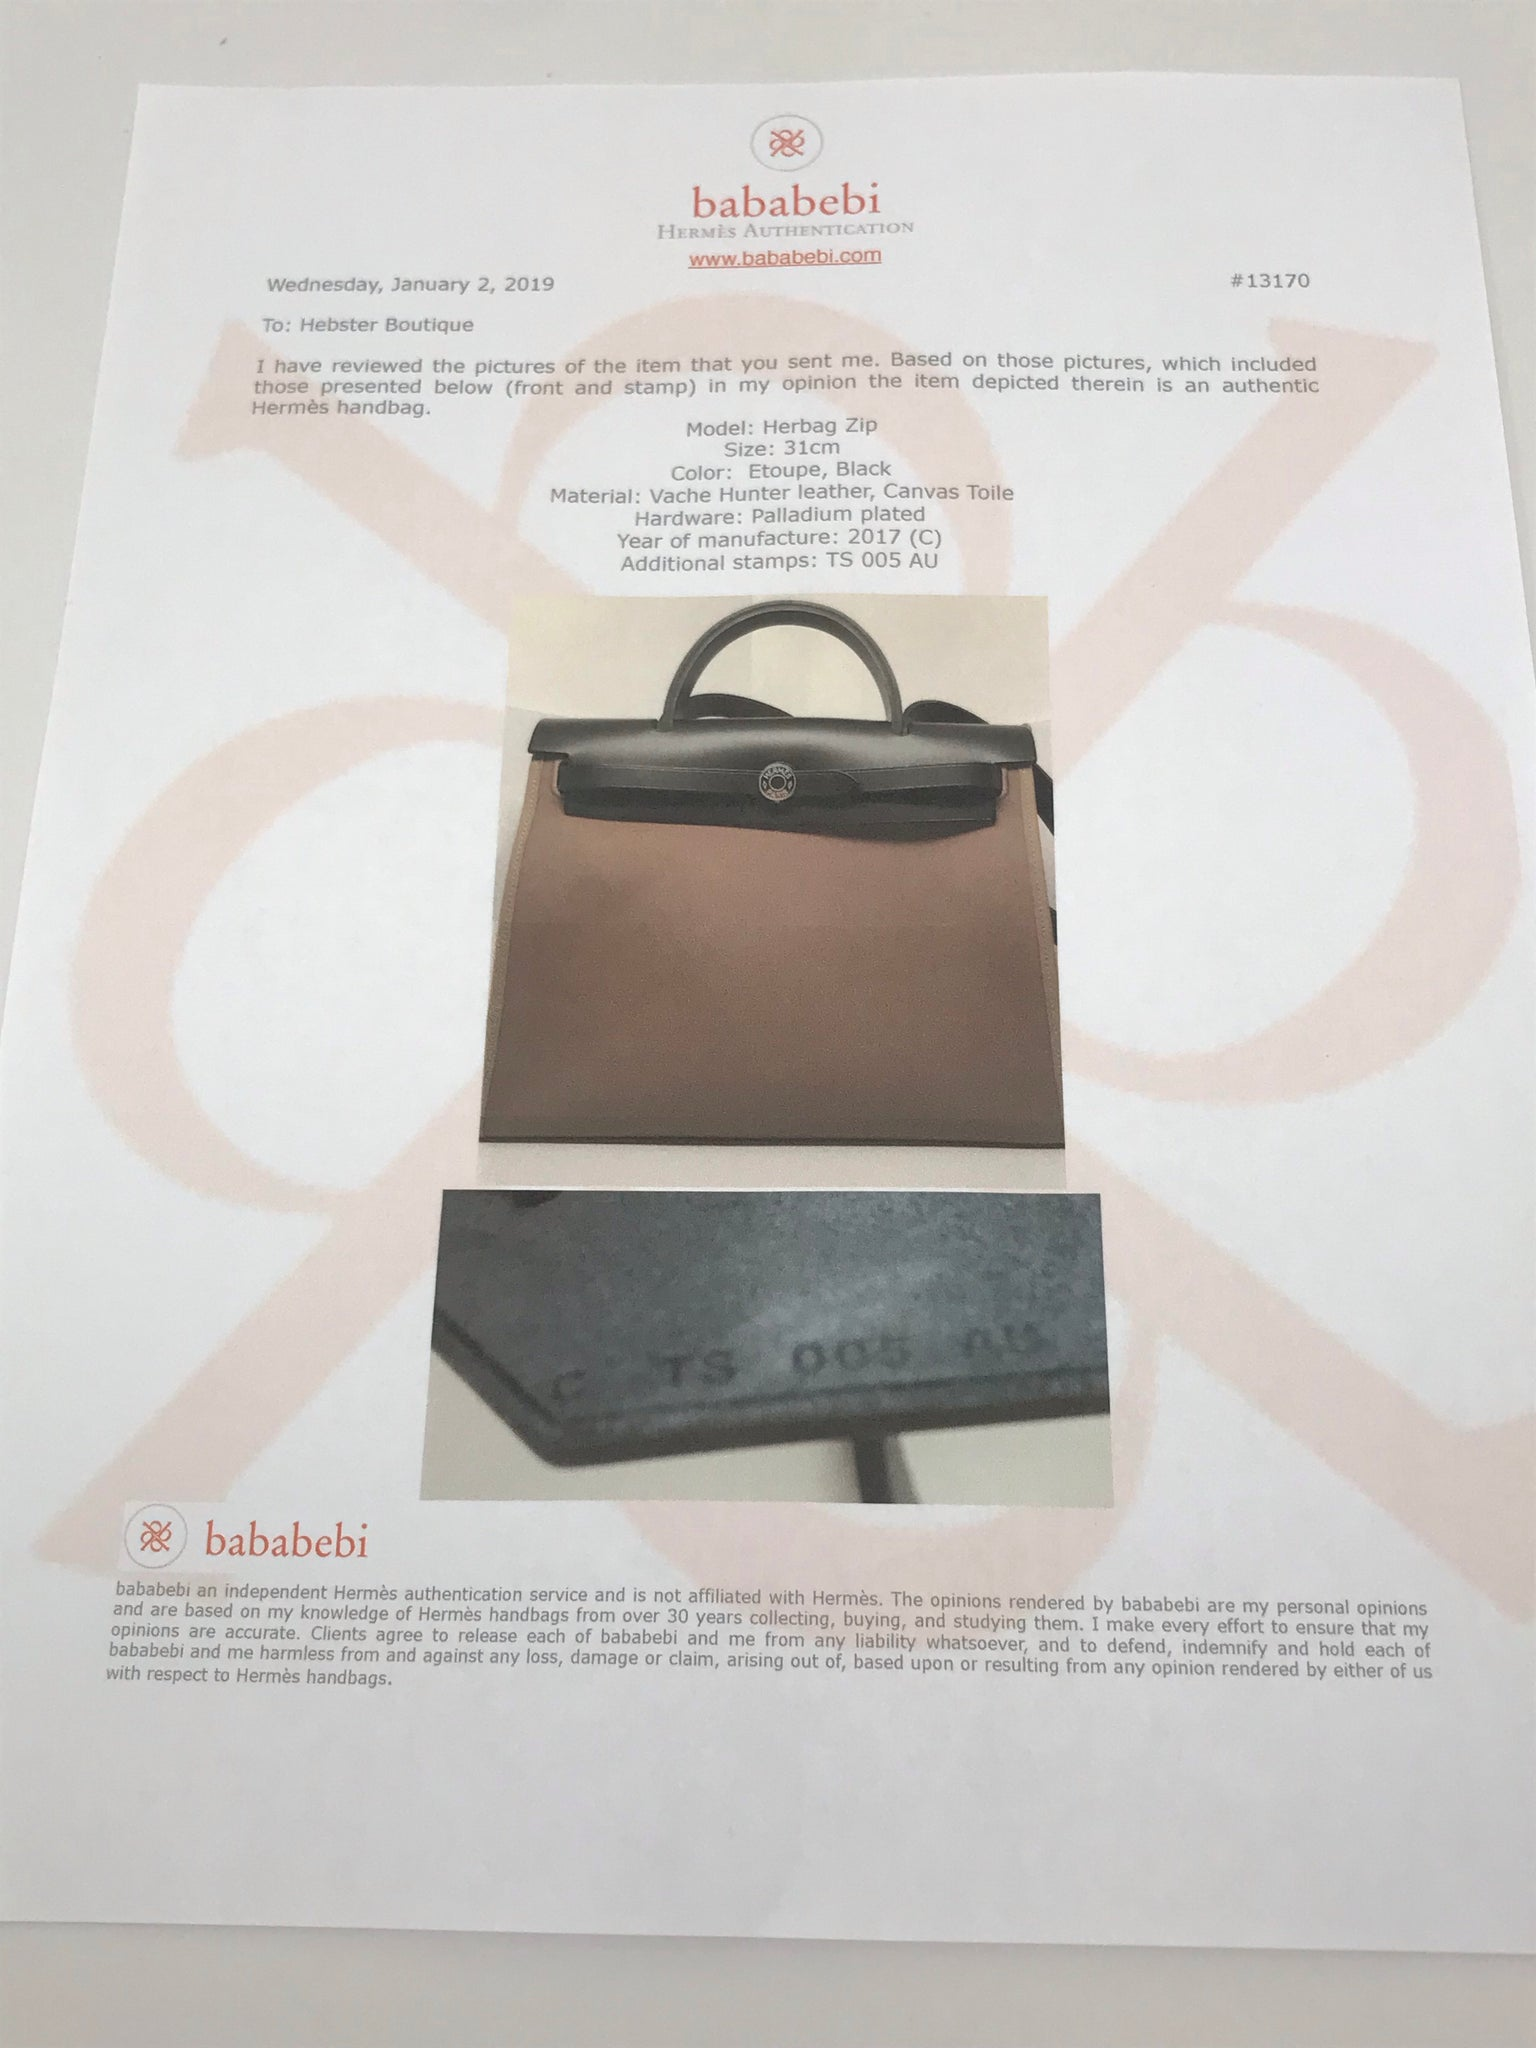 HERMES HERBAG ZIP 31 - ETOUPE/BLACK VACHE HUNTER LEATHER